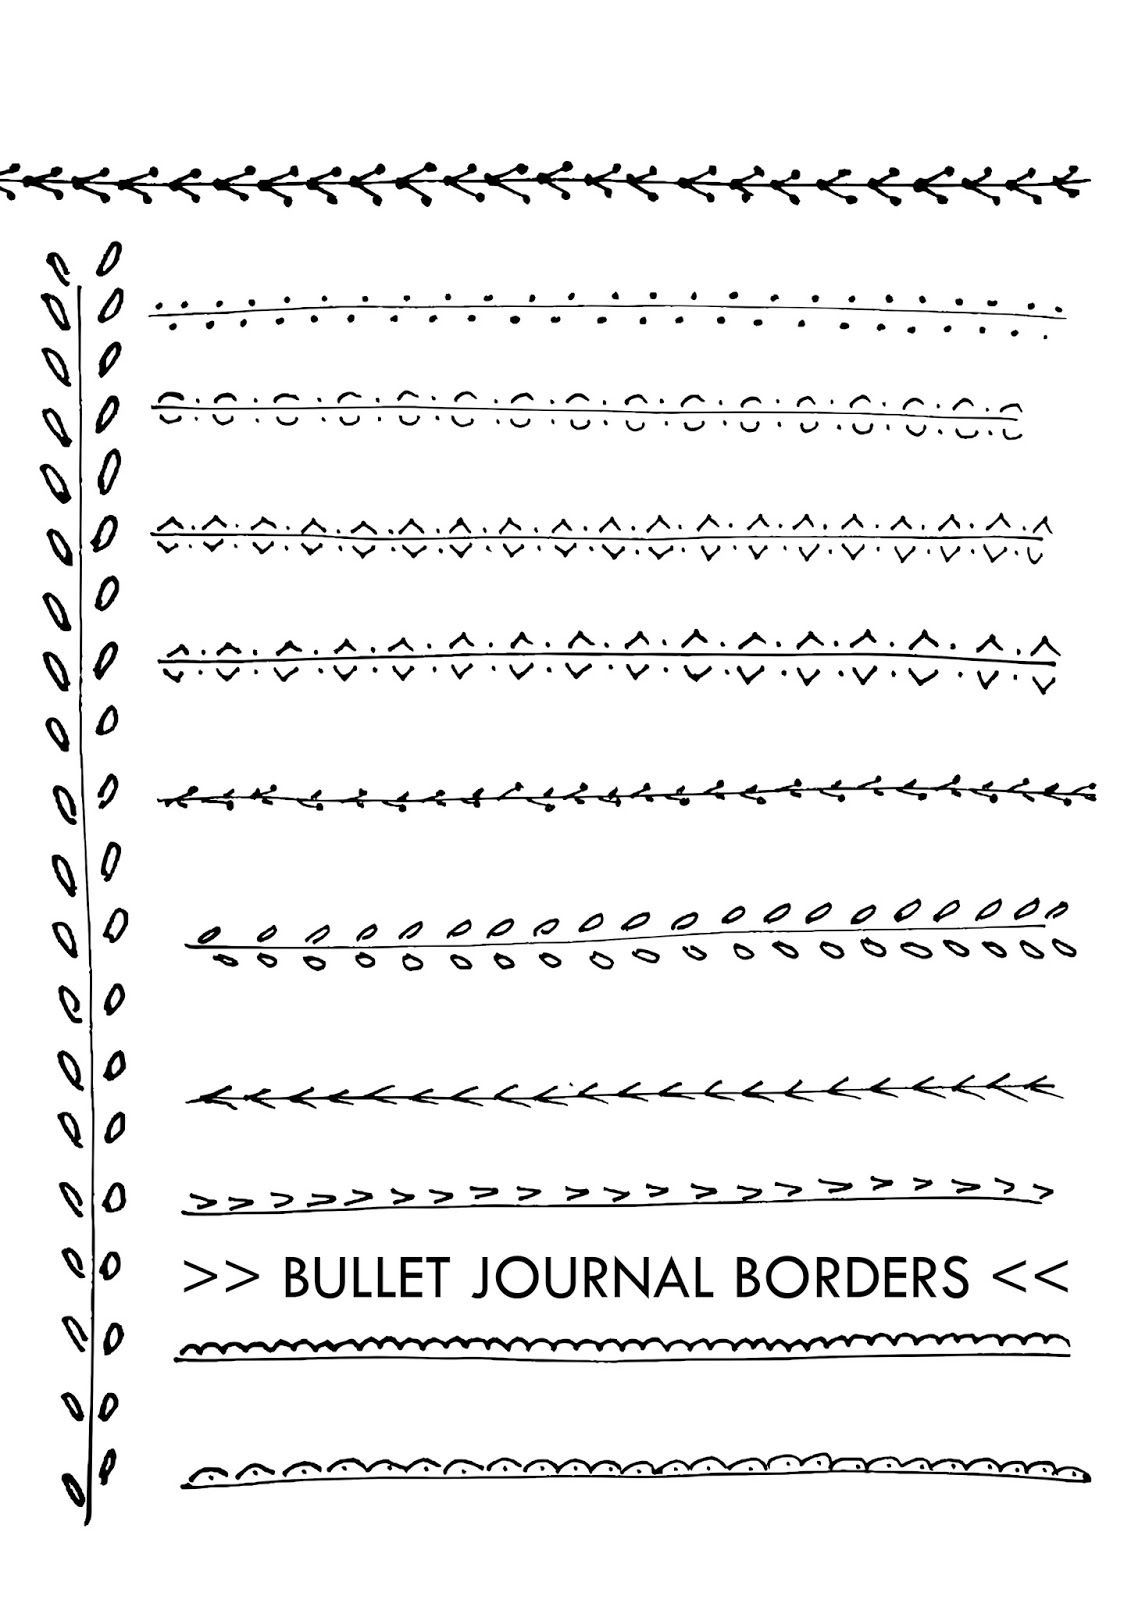 Doodle borders free printable | bullet journal templates | Drawings ...